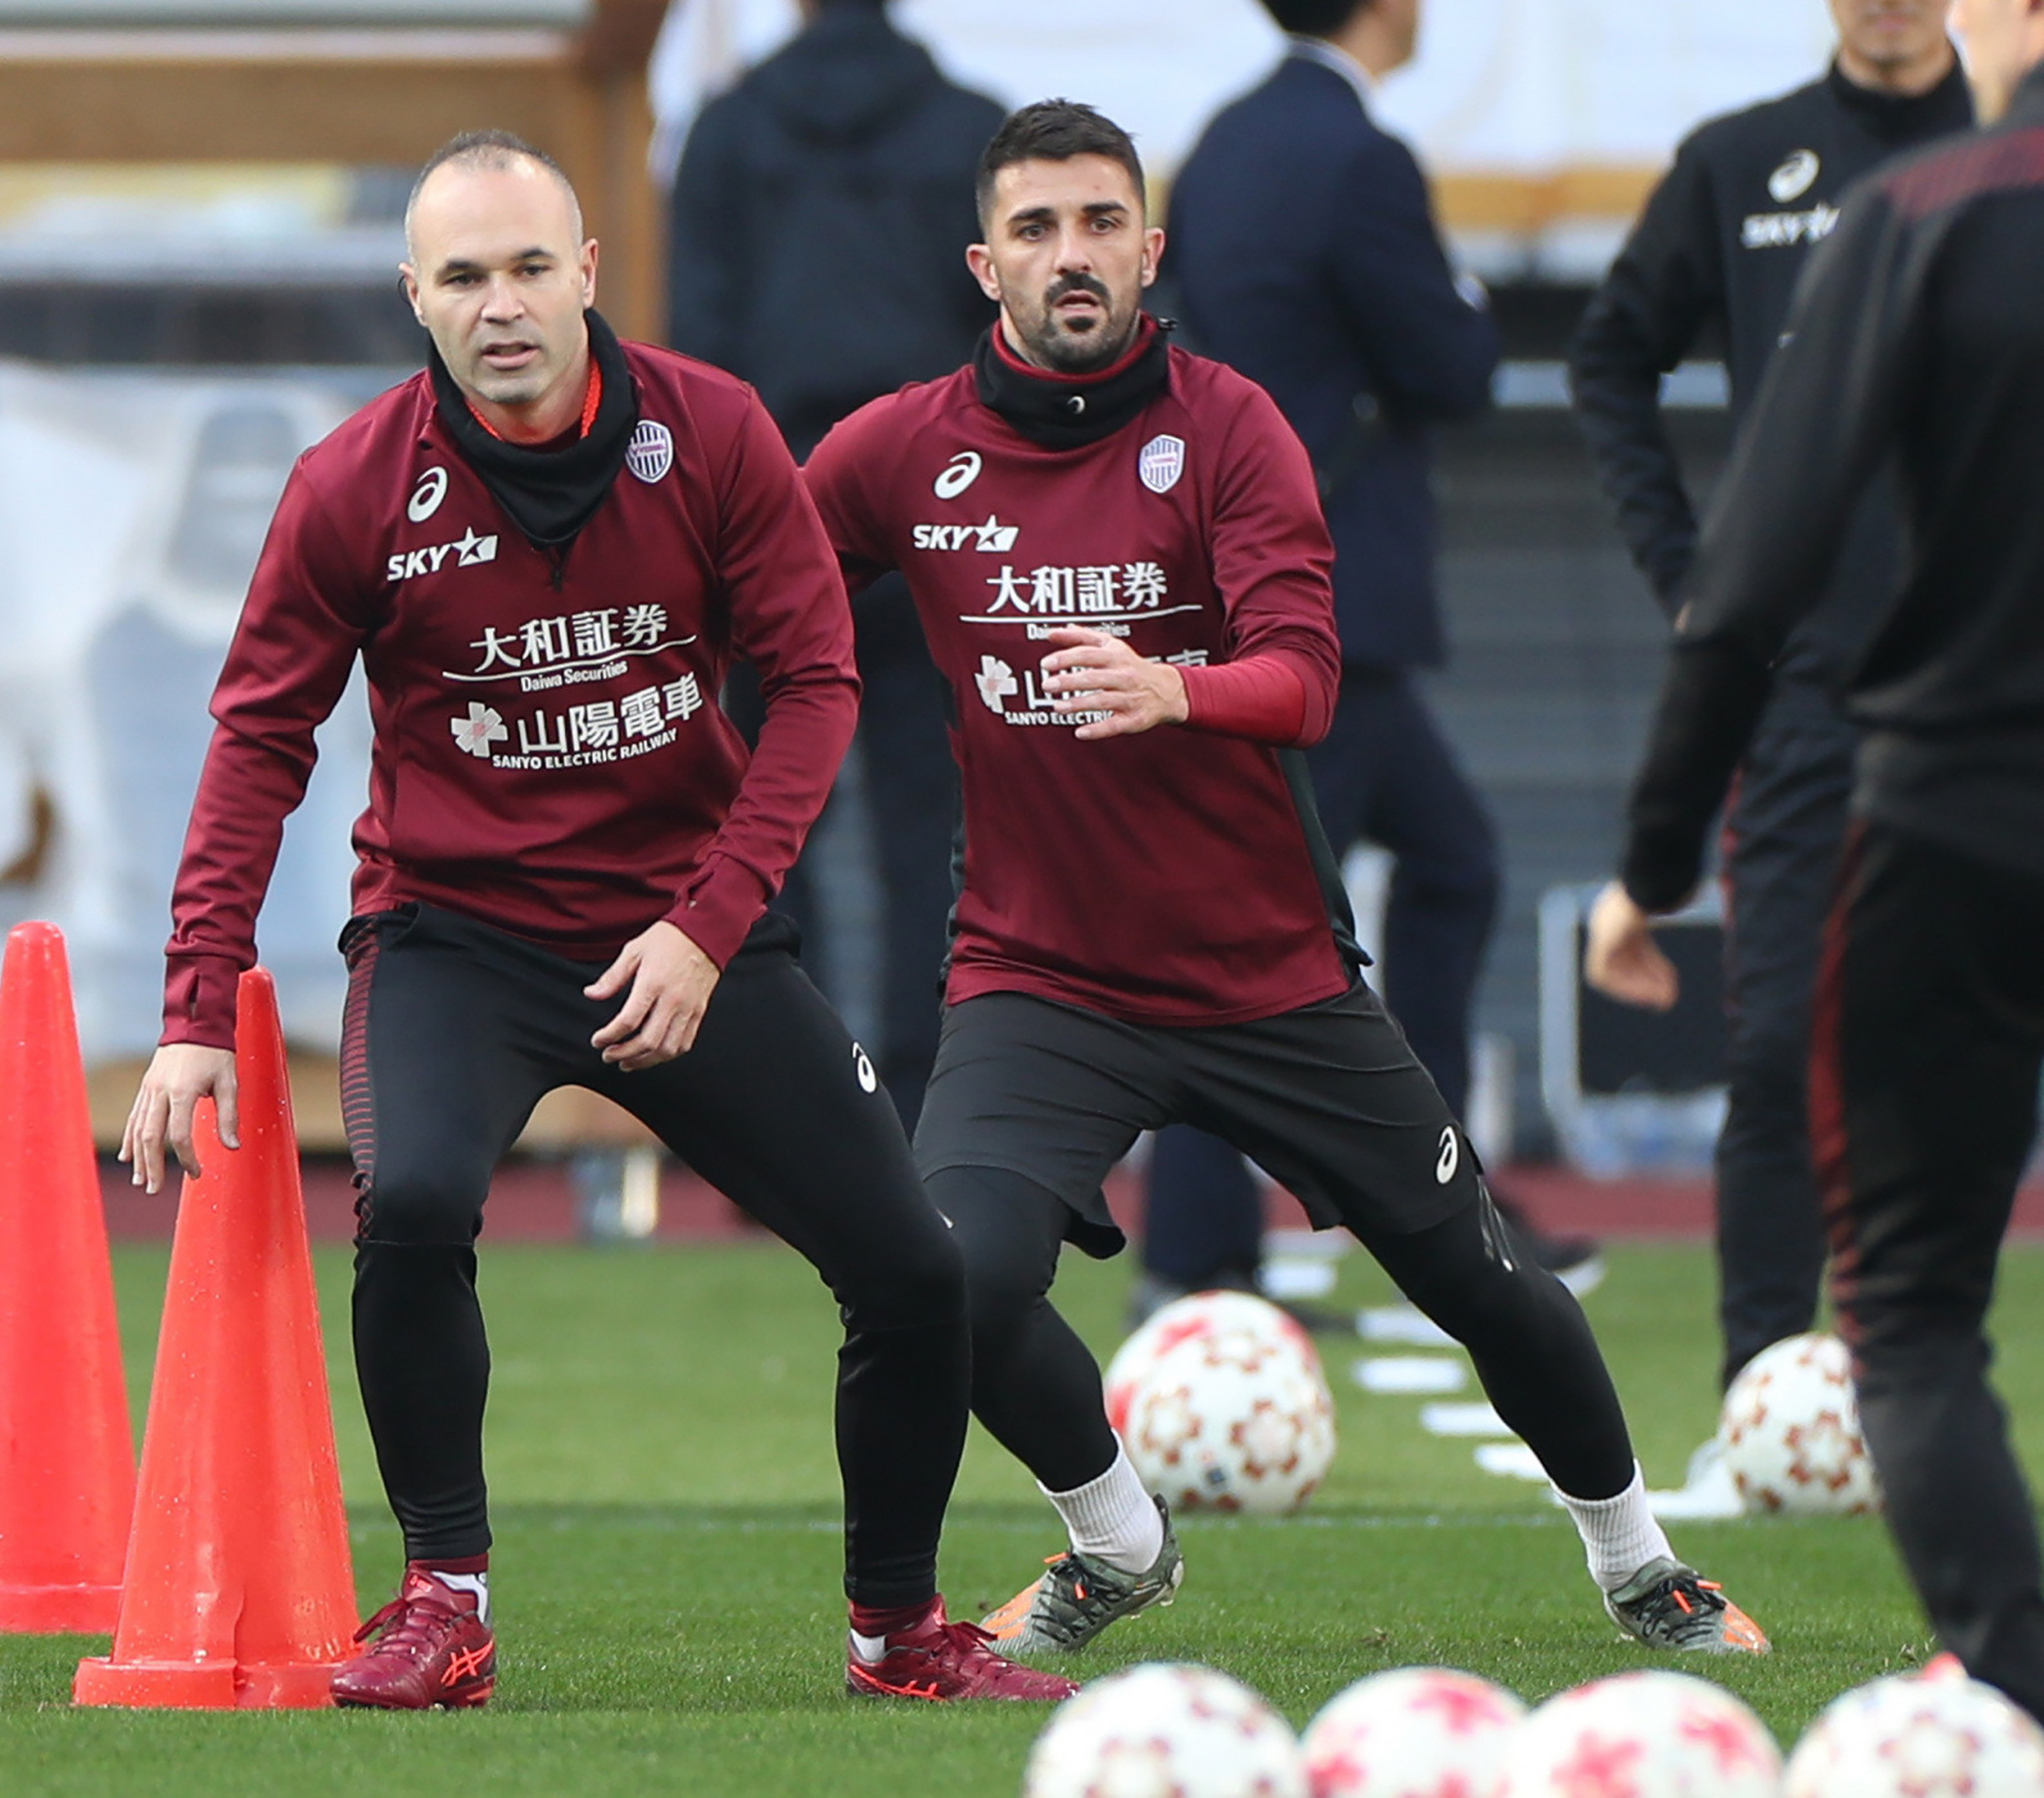 Spanish footballers Andres Iniesta and David Villa are expected to feature in the Emperor's Cup final for Vissel Kobe ©Getty Images